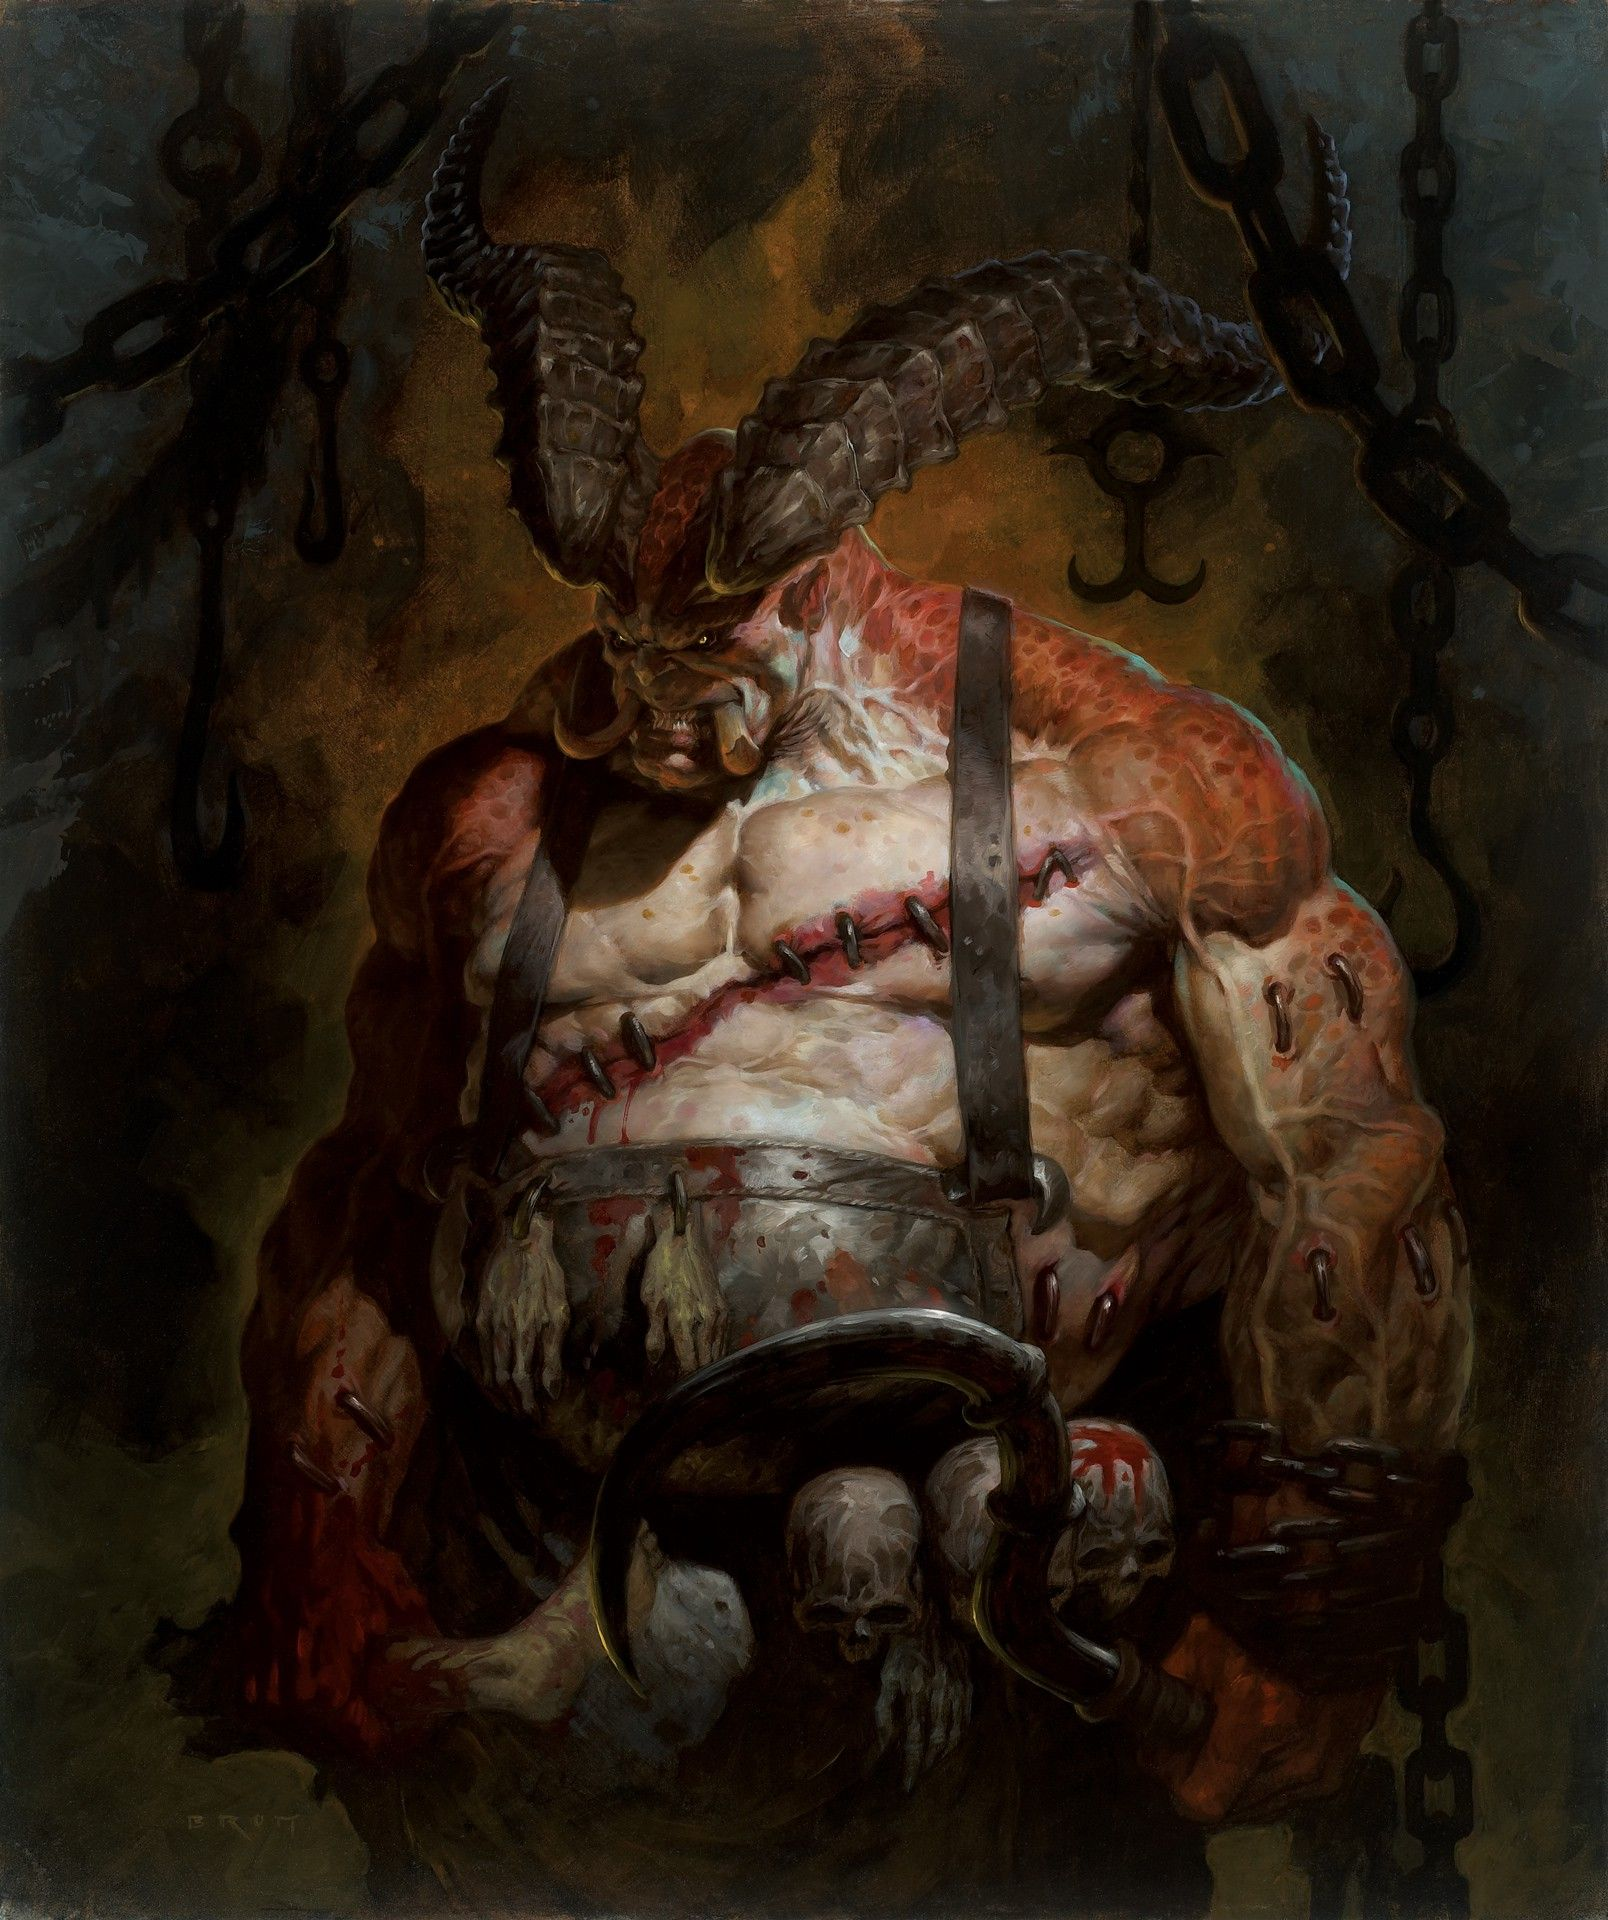 The Butcher (Diablo)